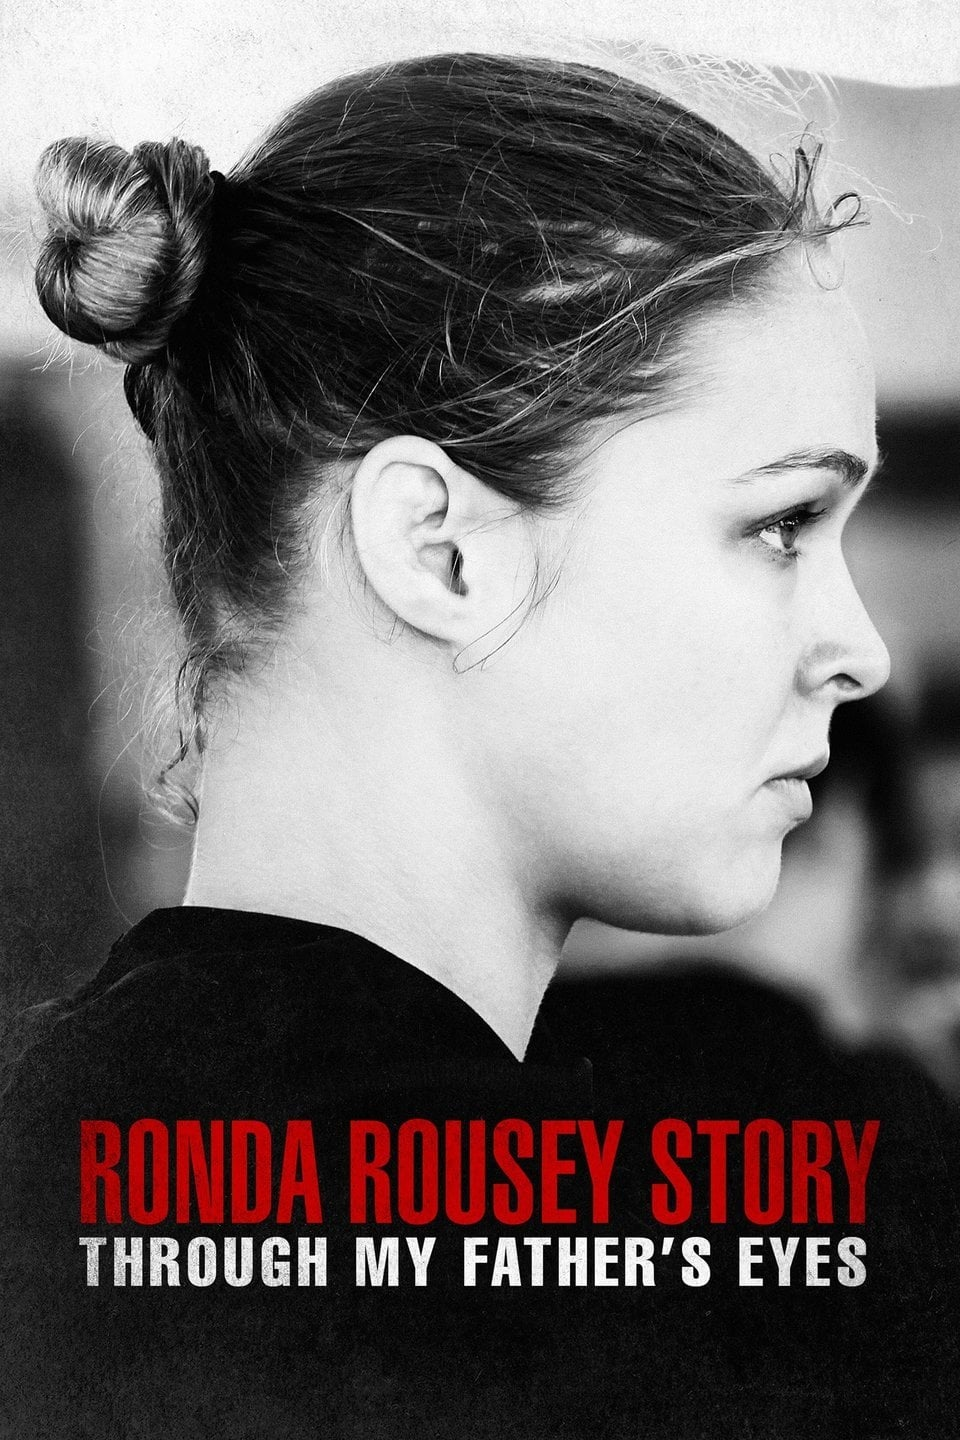 The Ronda Rousey Story: Through My Father's Eyes